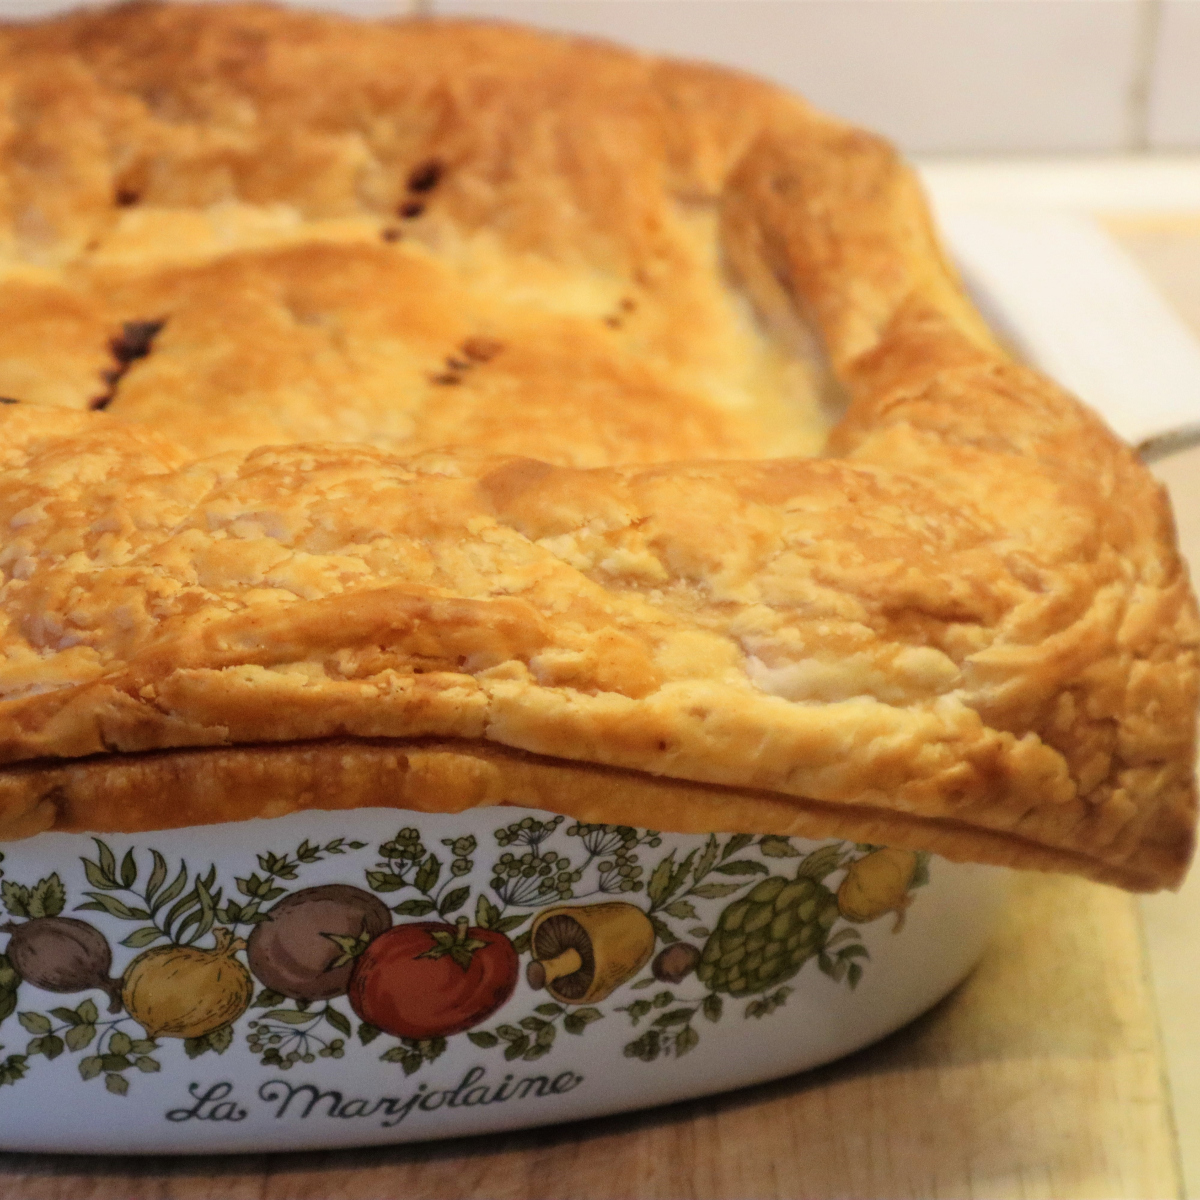 Homemade steak and kidney pie with puff pastry - Foodle Club